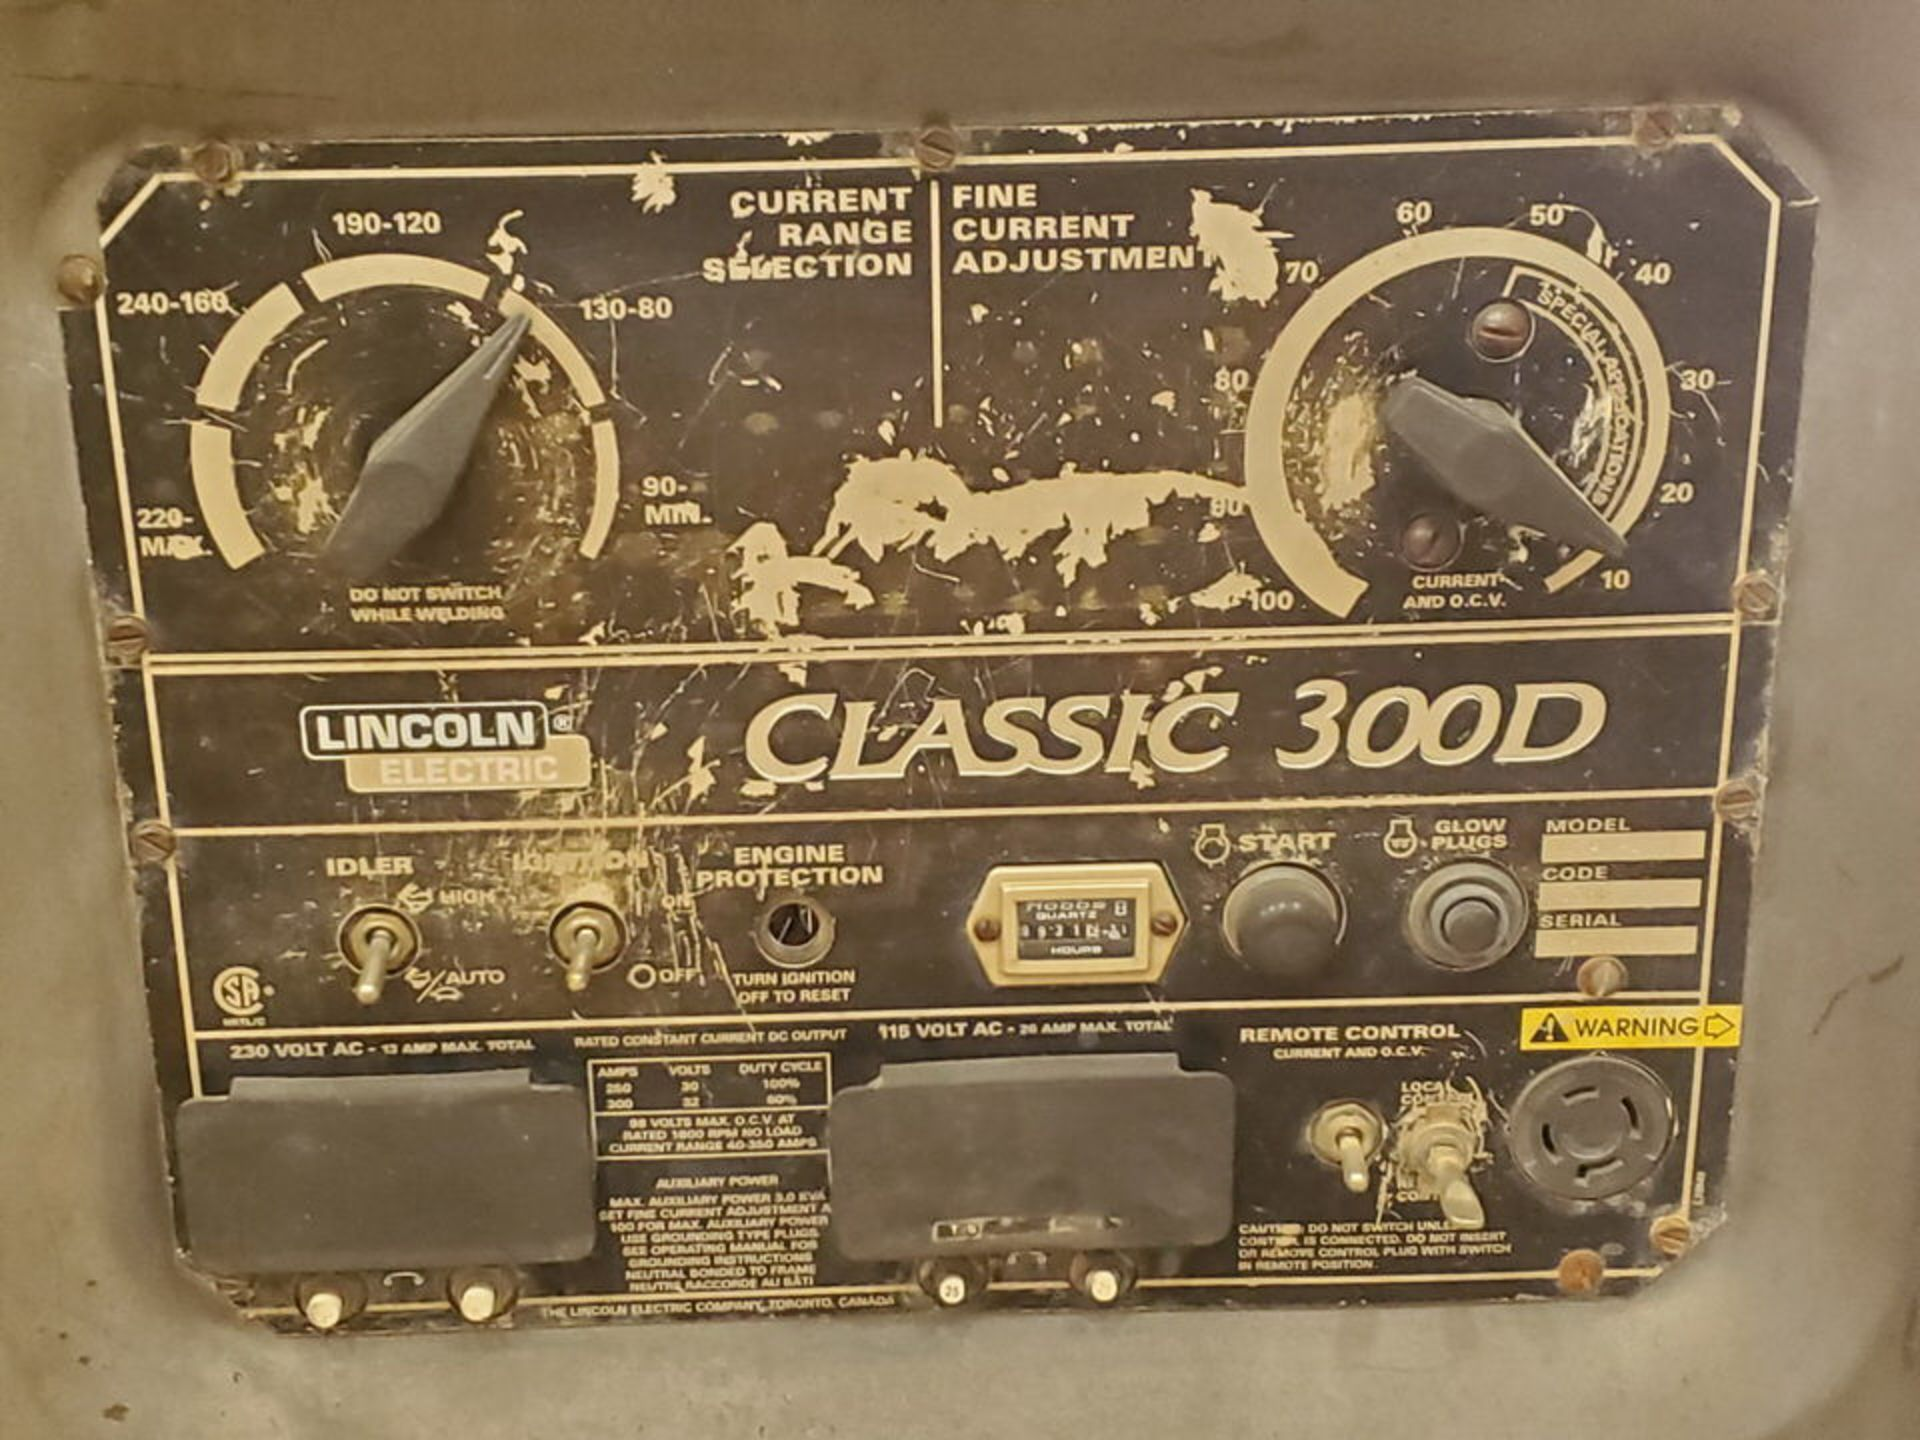 LE Classic 300D Multiprocessing Welder 115/230V, 26/13A; 4 Cyl Kubota Engine, 800RPM - Image 6 of 9